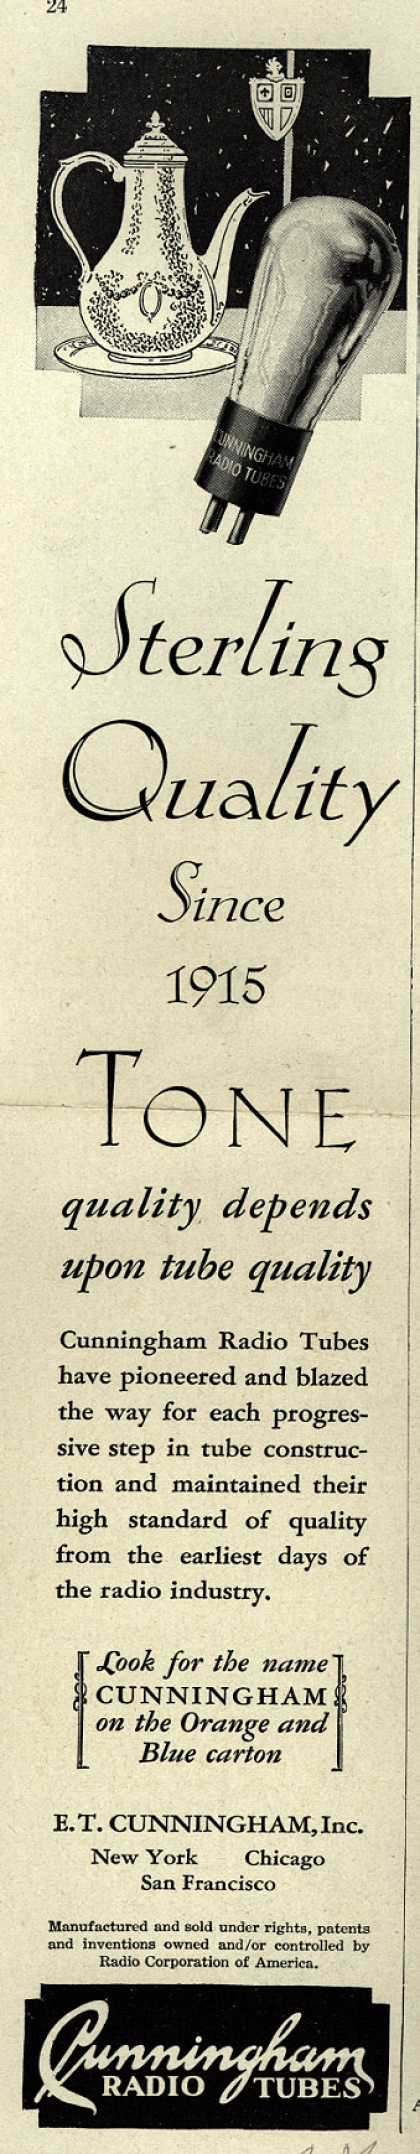 E.T. Cunningham's Radio Tubes – Sterling Quality Since 1915 (1928)